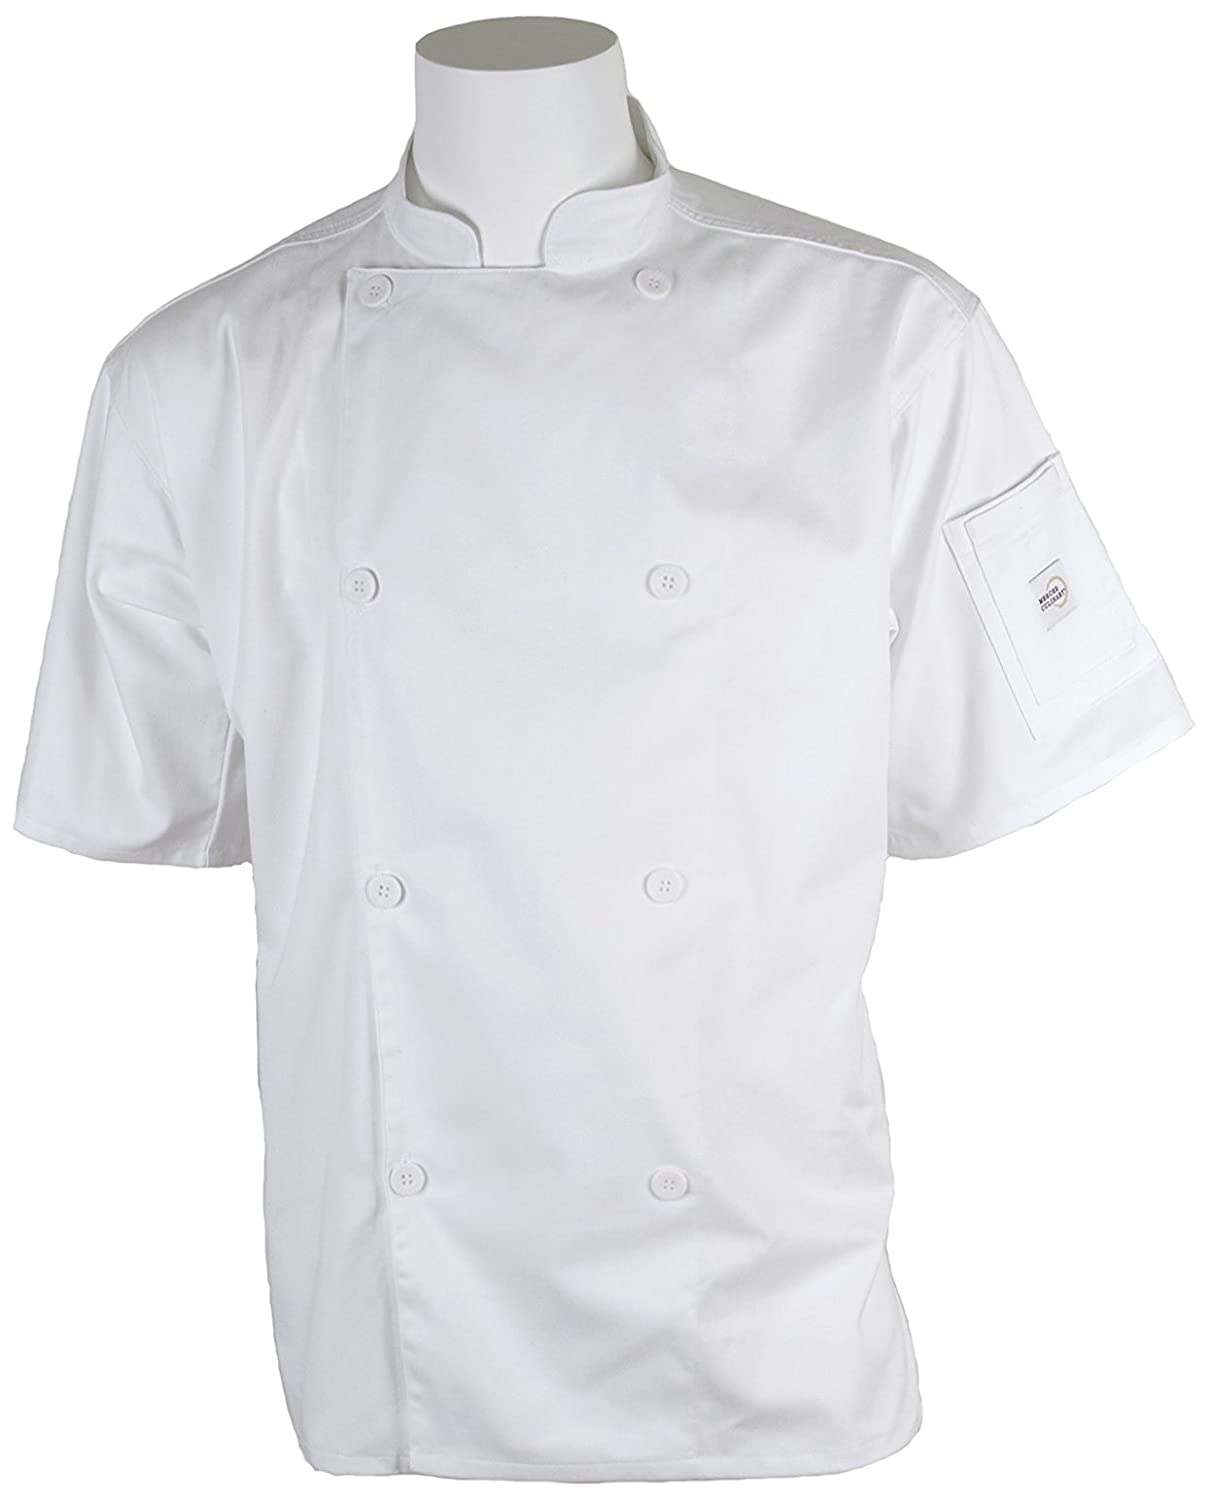 Mercer Culinary M61012BK3X Genesis Unisex Short Sleeve Chef Jacket with Traditional Buttons, 3X-Large, Black